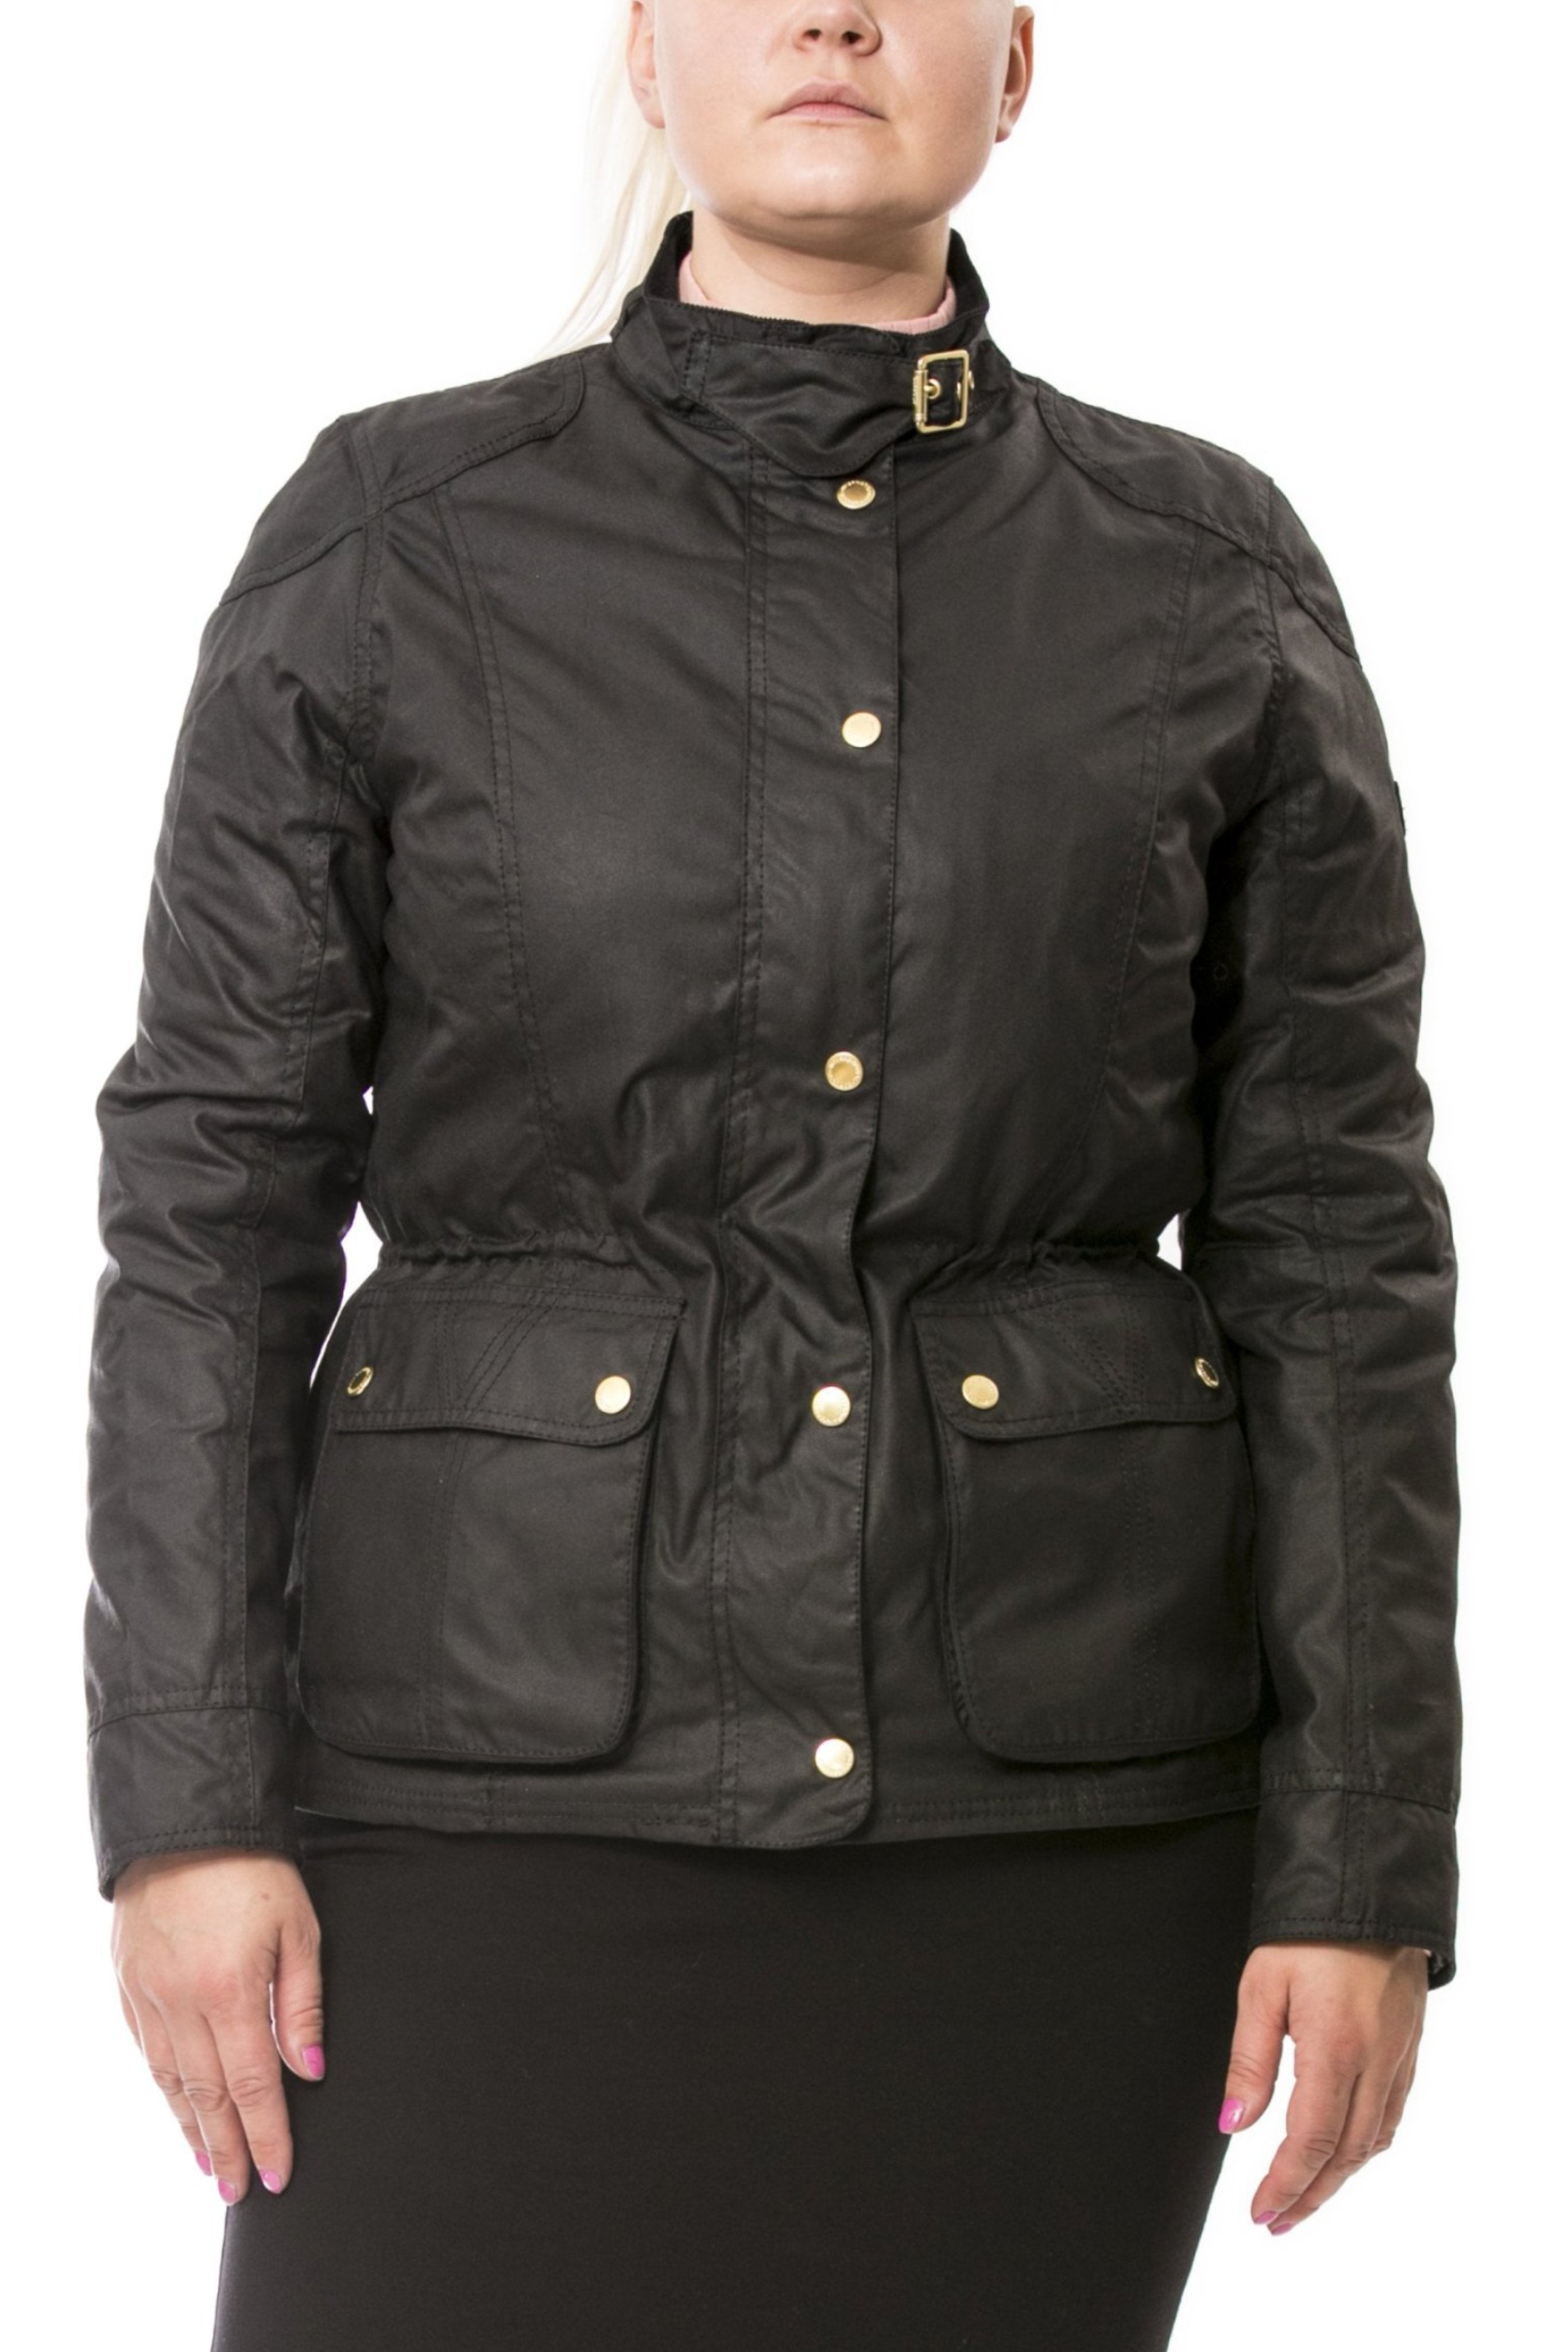 Barbour int. waxed jacket Fascia